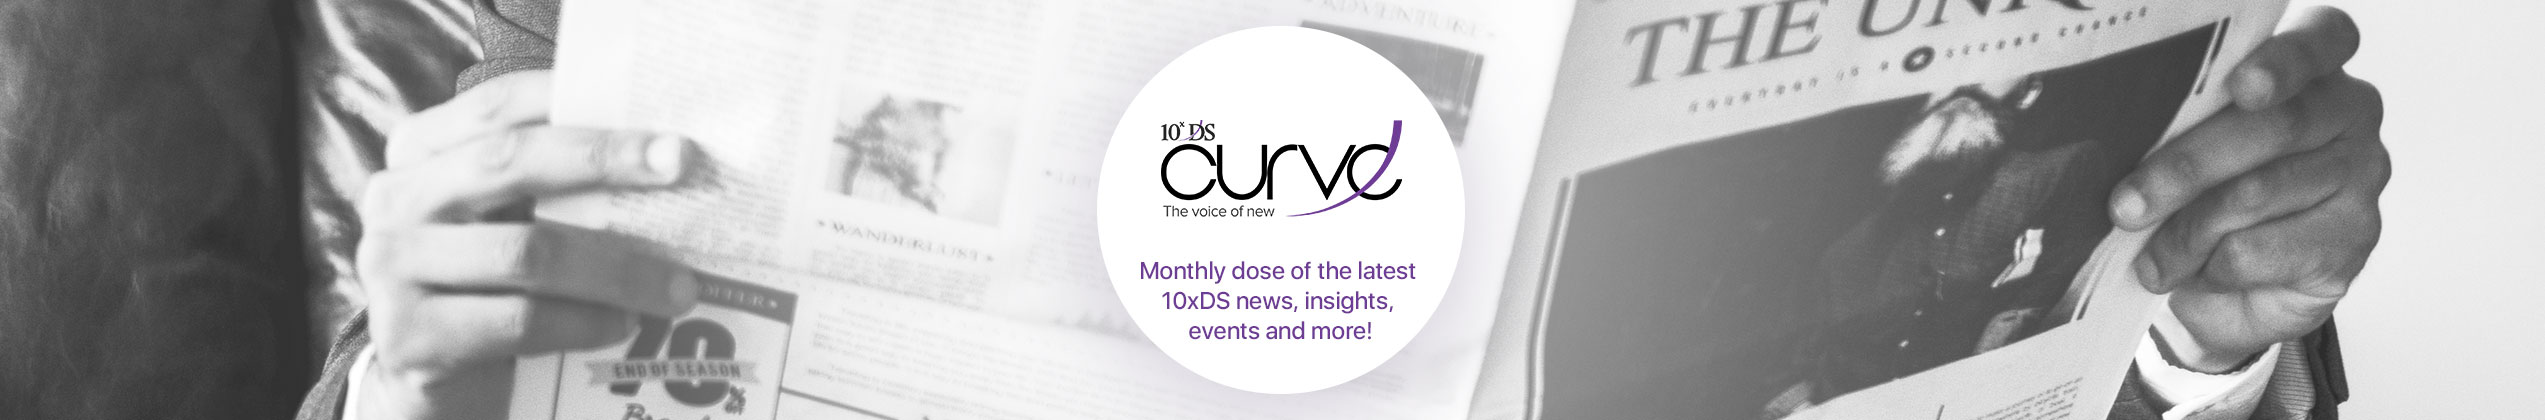 Curve - Voice of New Newsletter